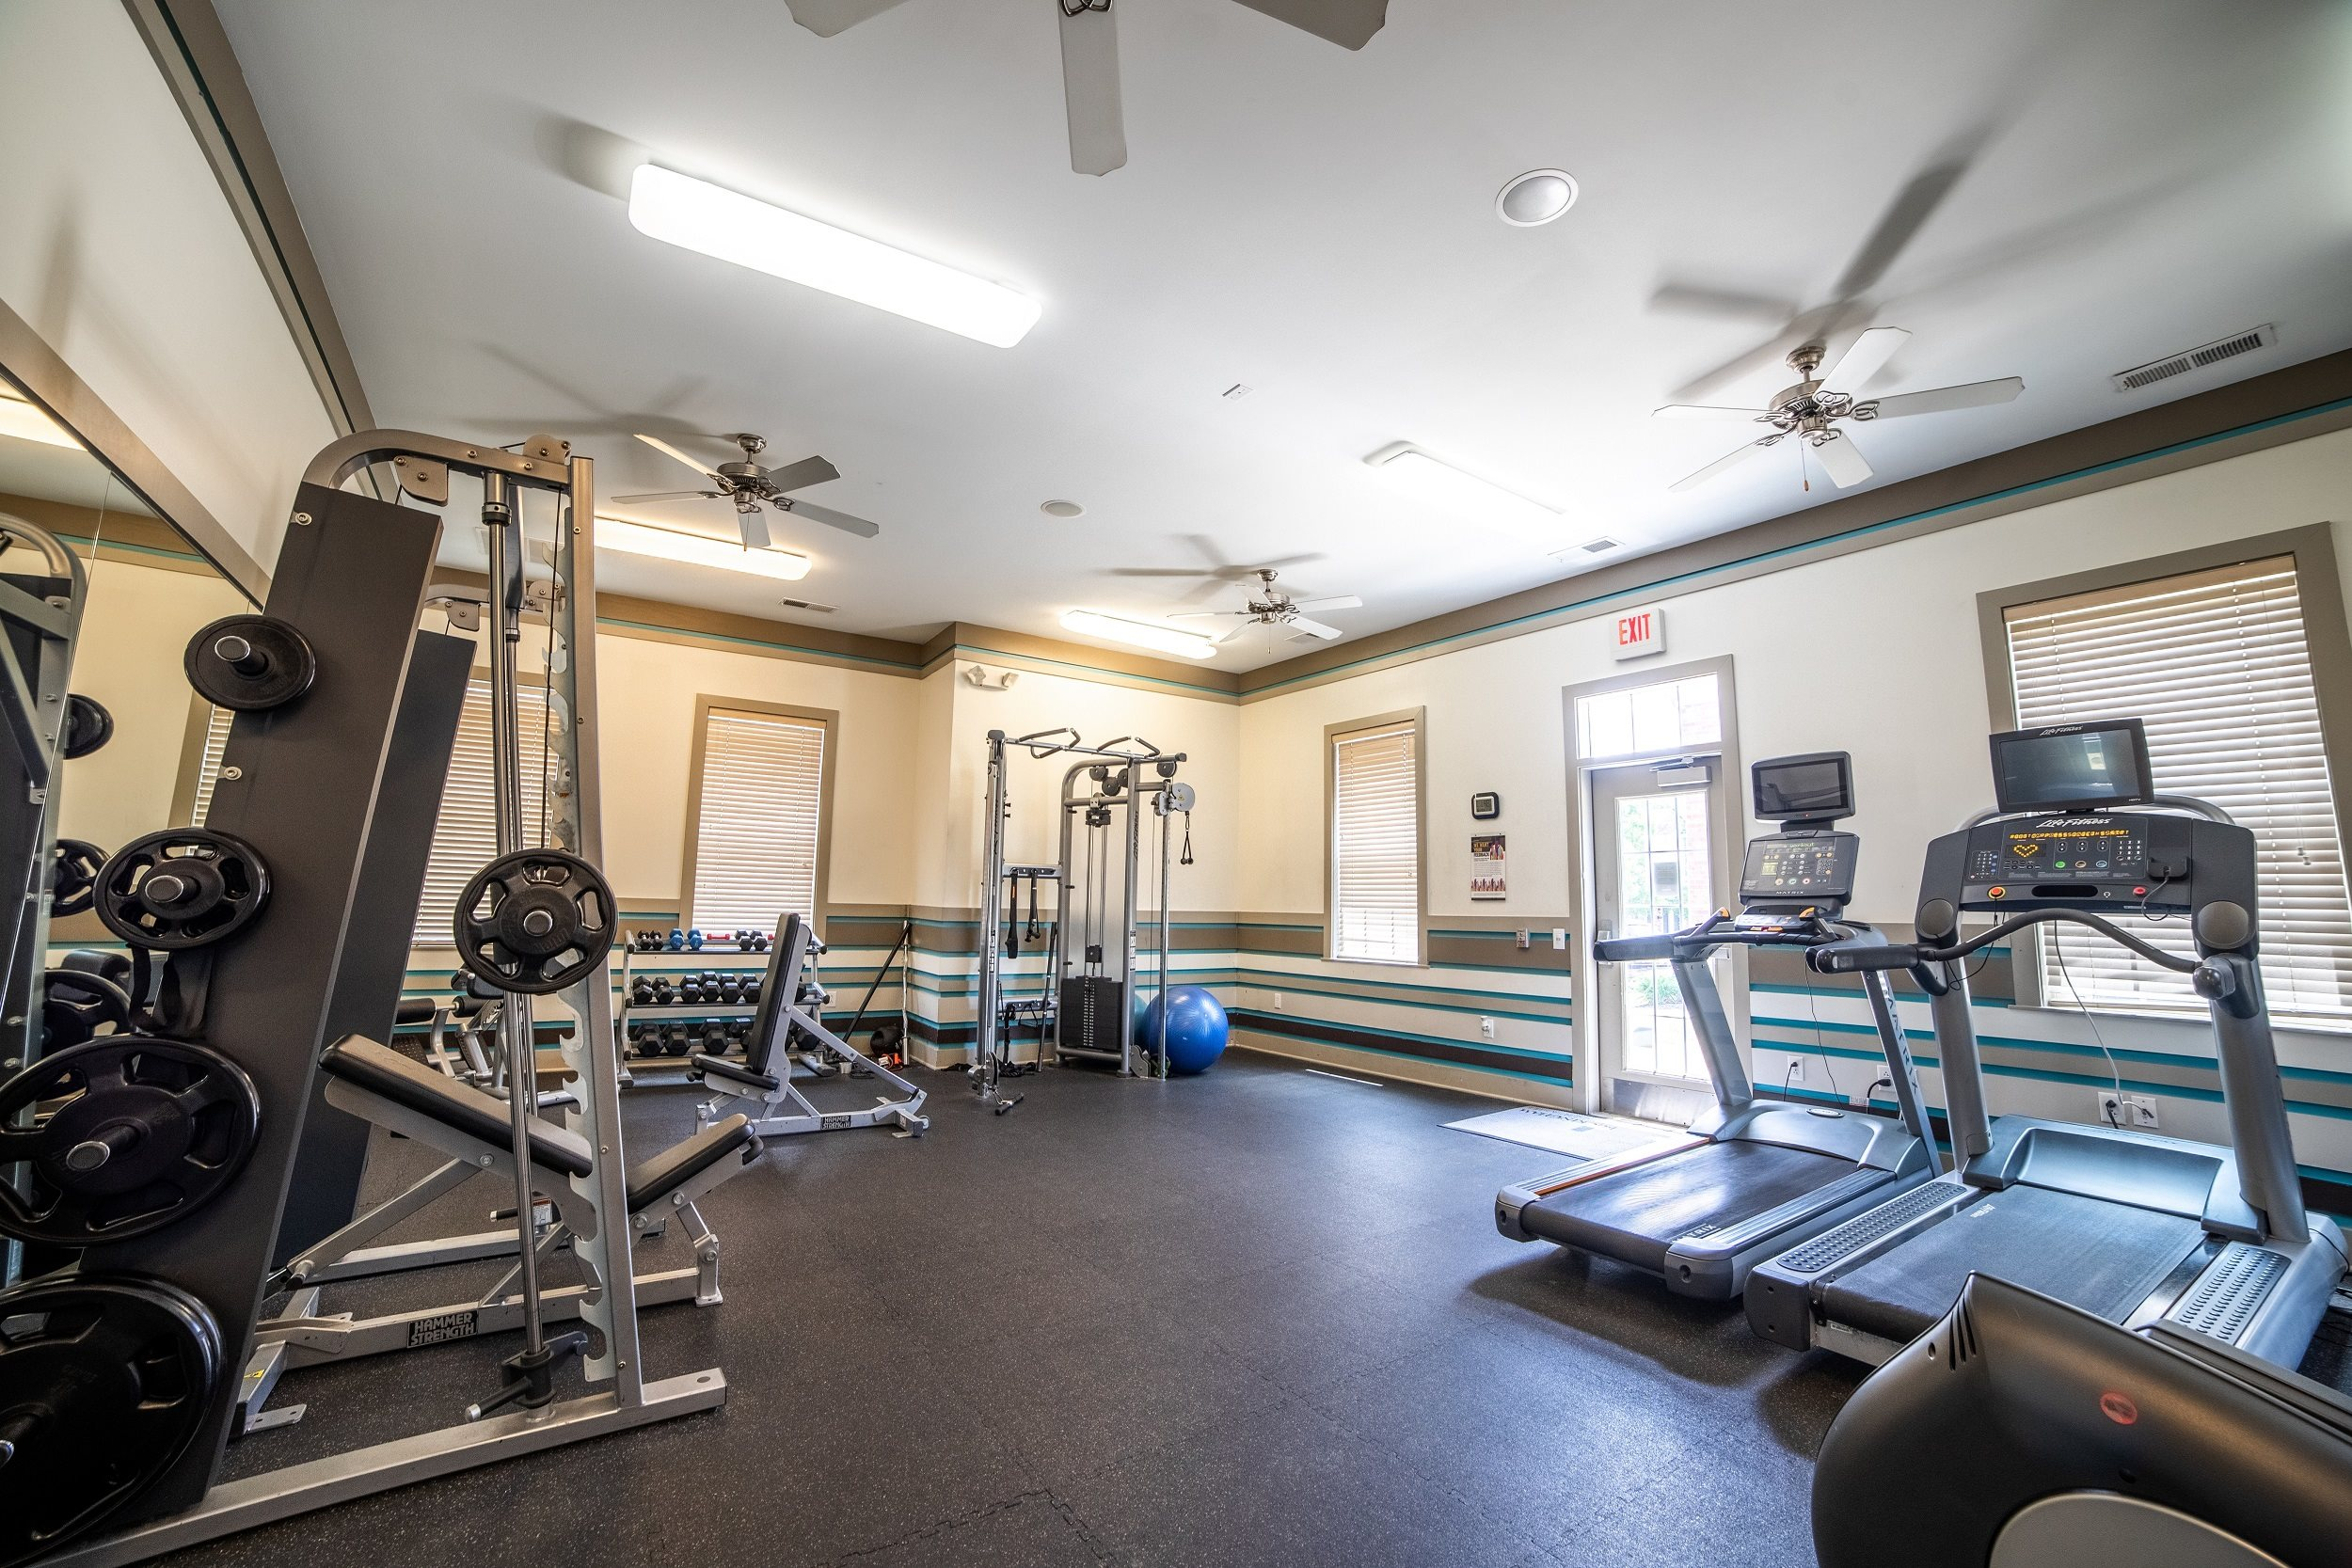 Fitness Center With Modern Equipment at Buckingham Monon Living, Indiana